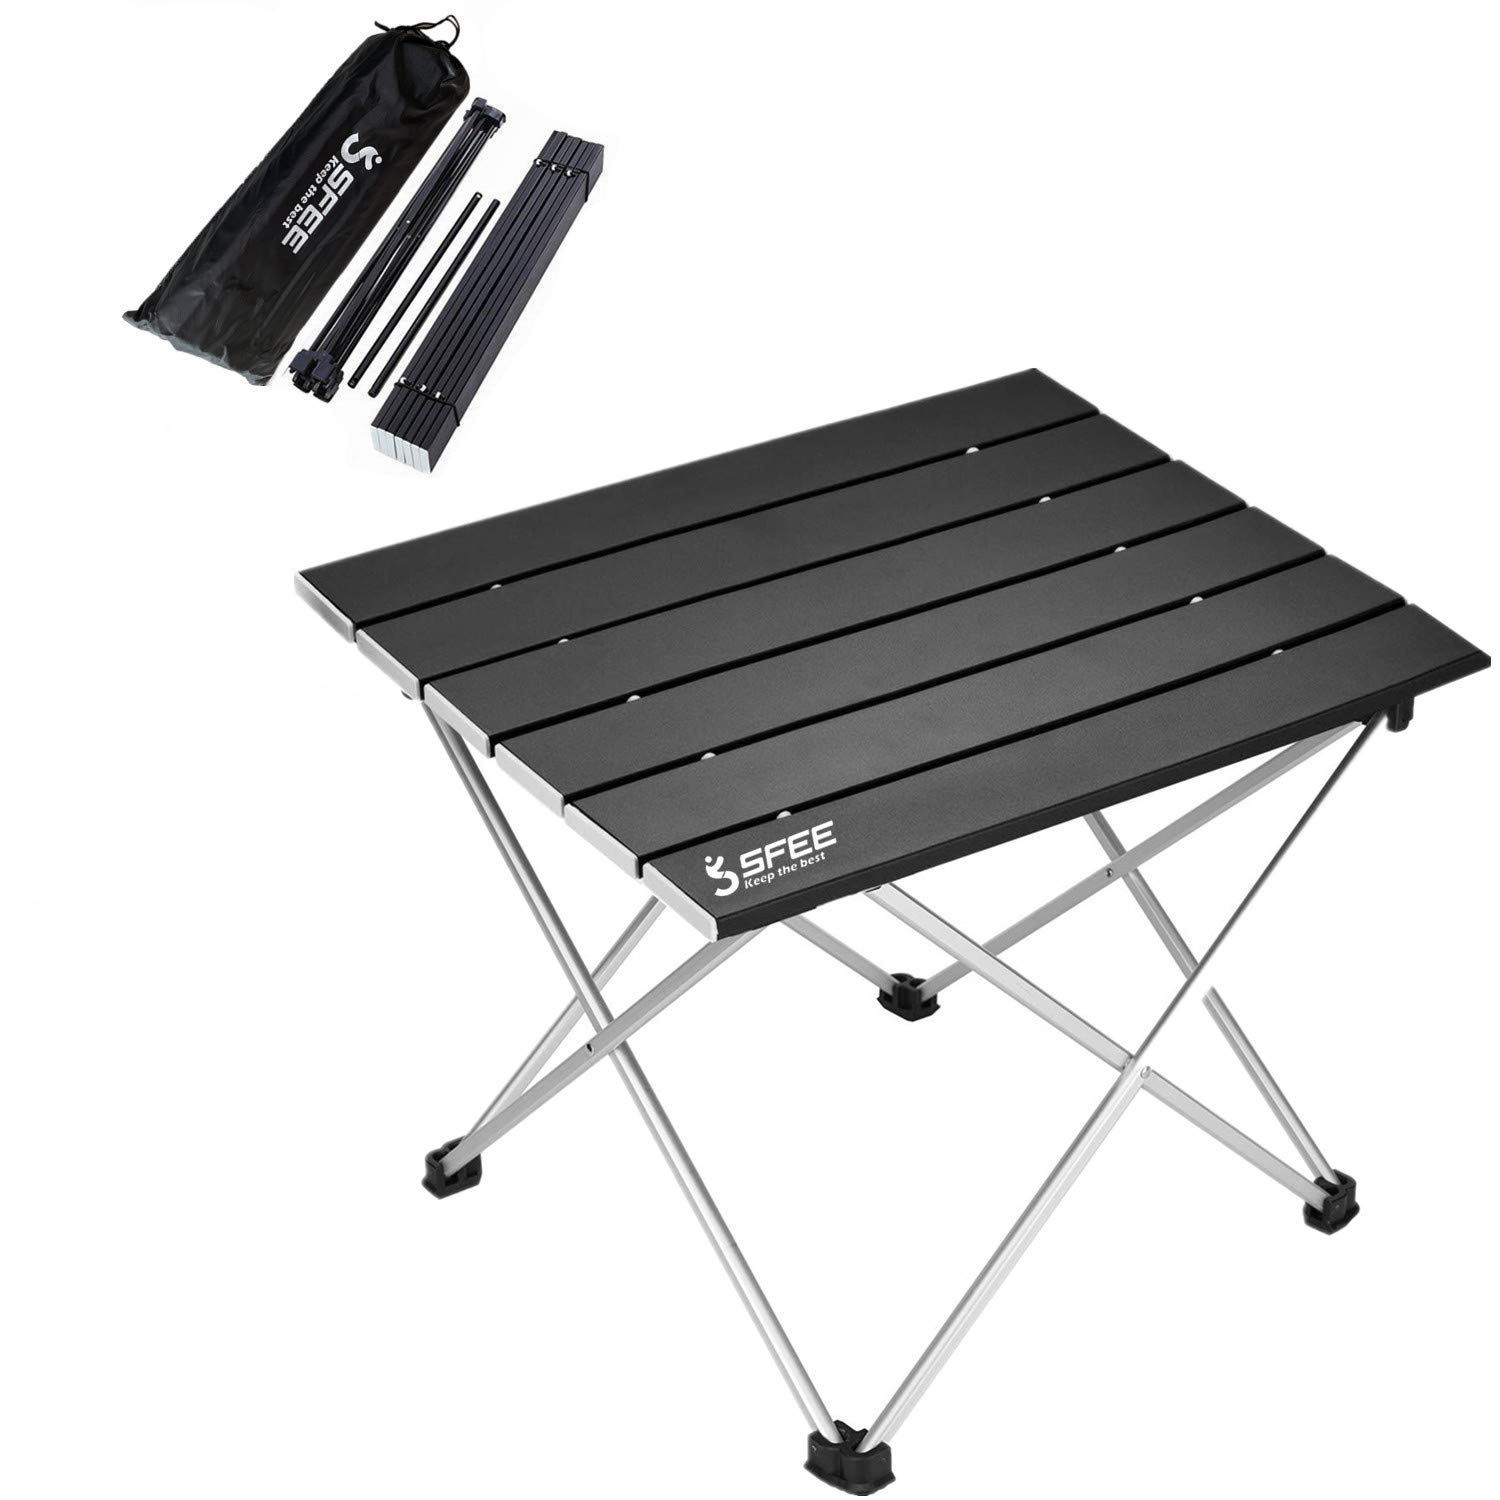 Sfee Folding Camping Table - Portable Ultralight Aluminum Camp Table Lightweight Compact Roll Up Picnic Table for Picnic Outdoor Hiking BBQ Camping Kitchen Fishing Beach with Carry Bag (Black) by Sfee